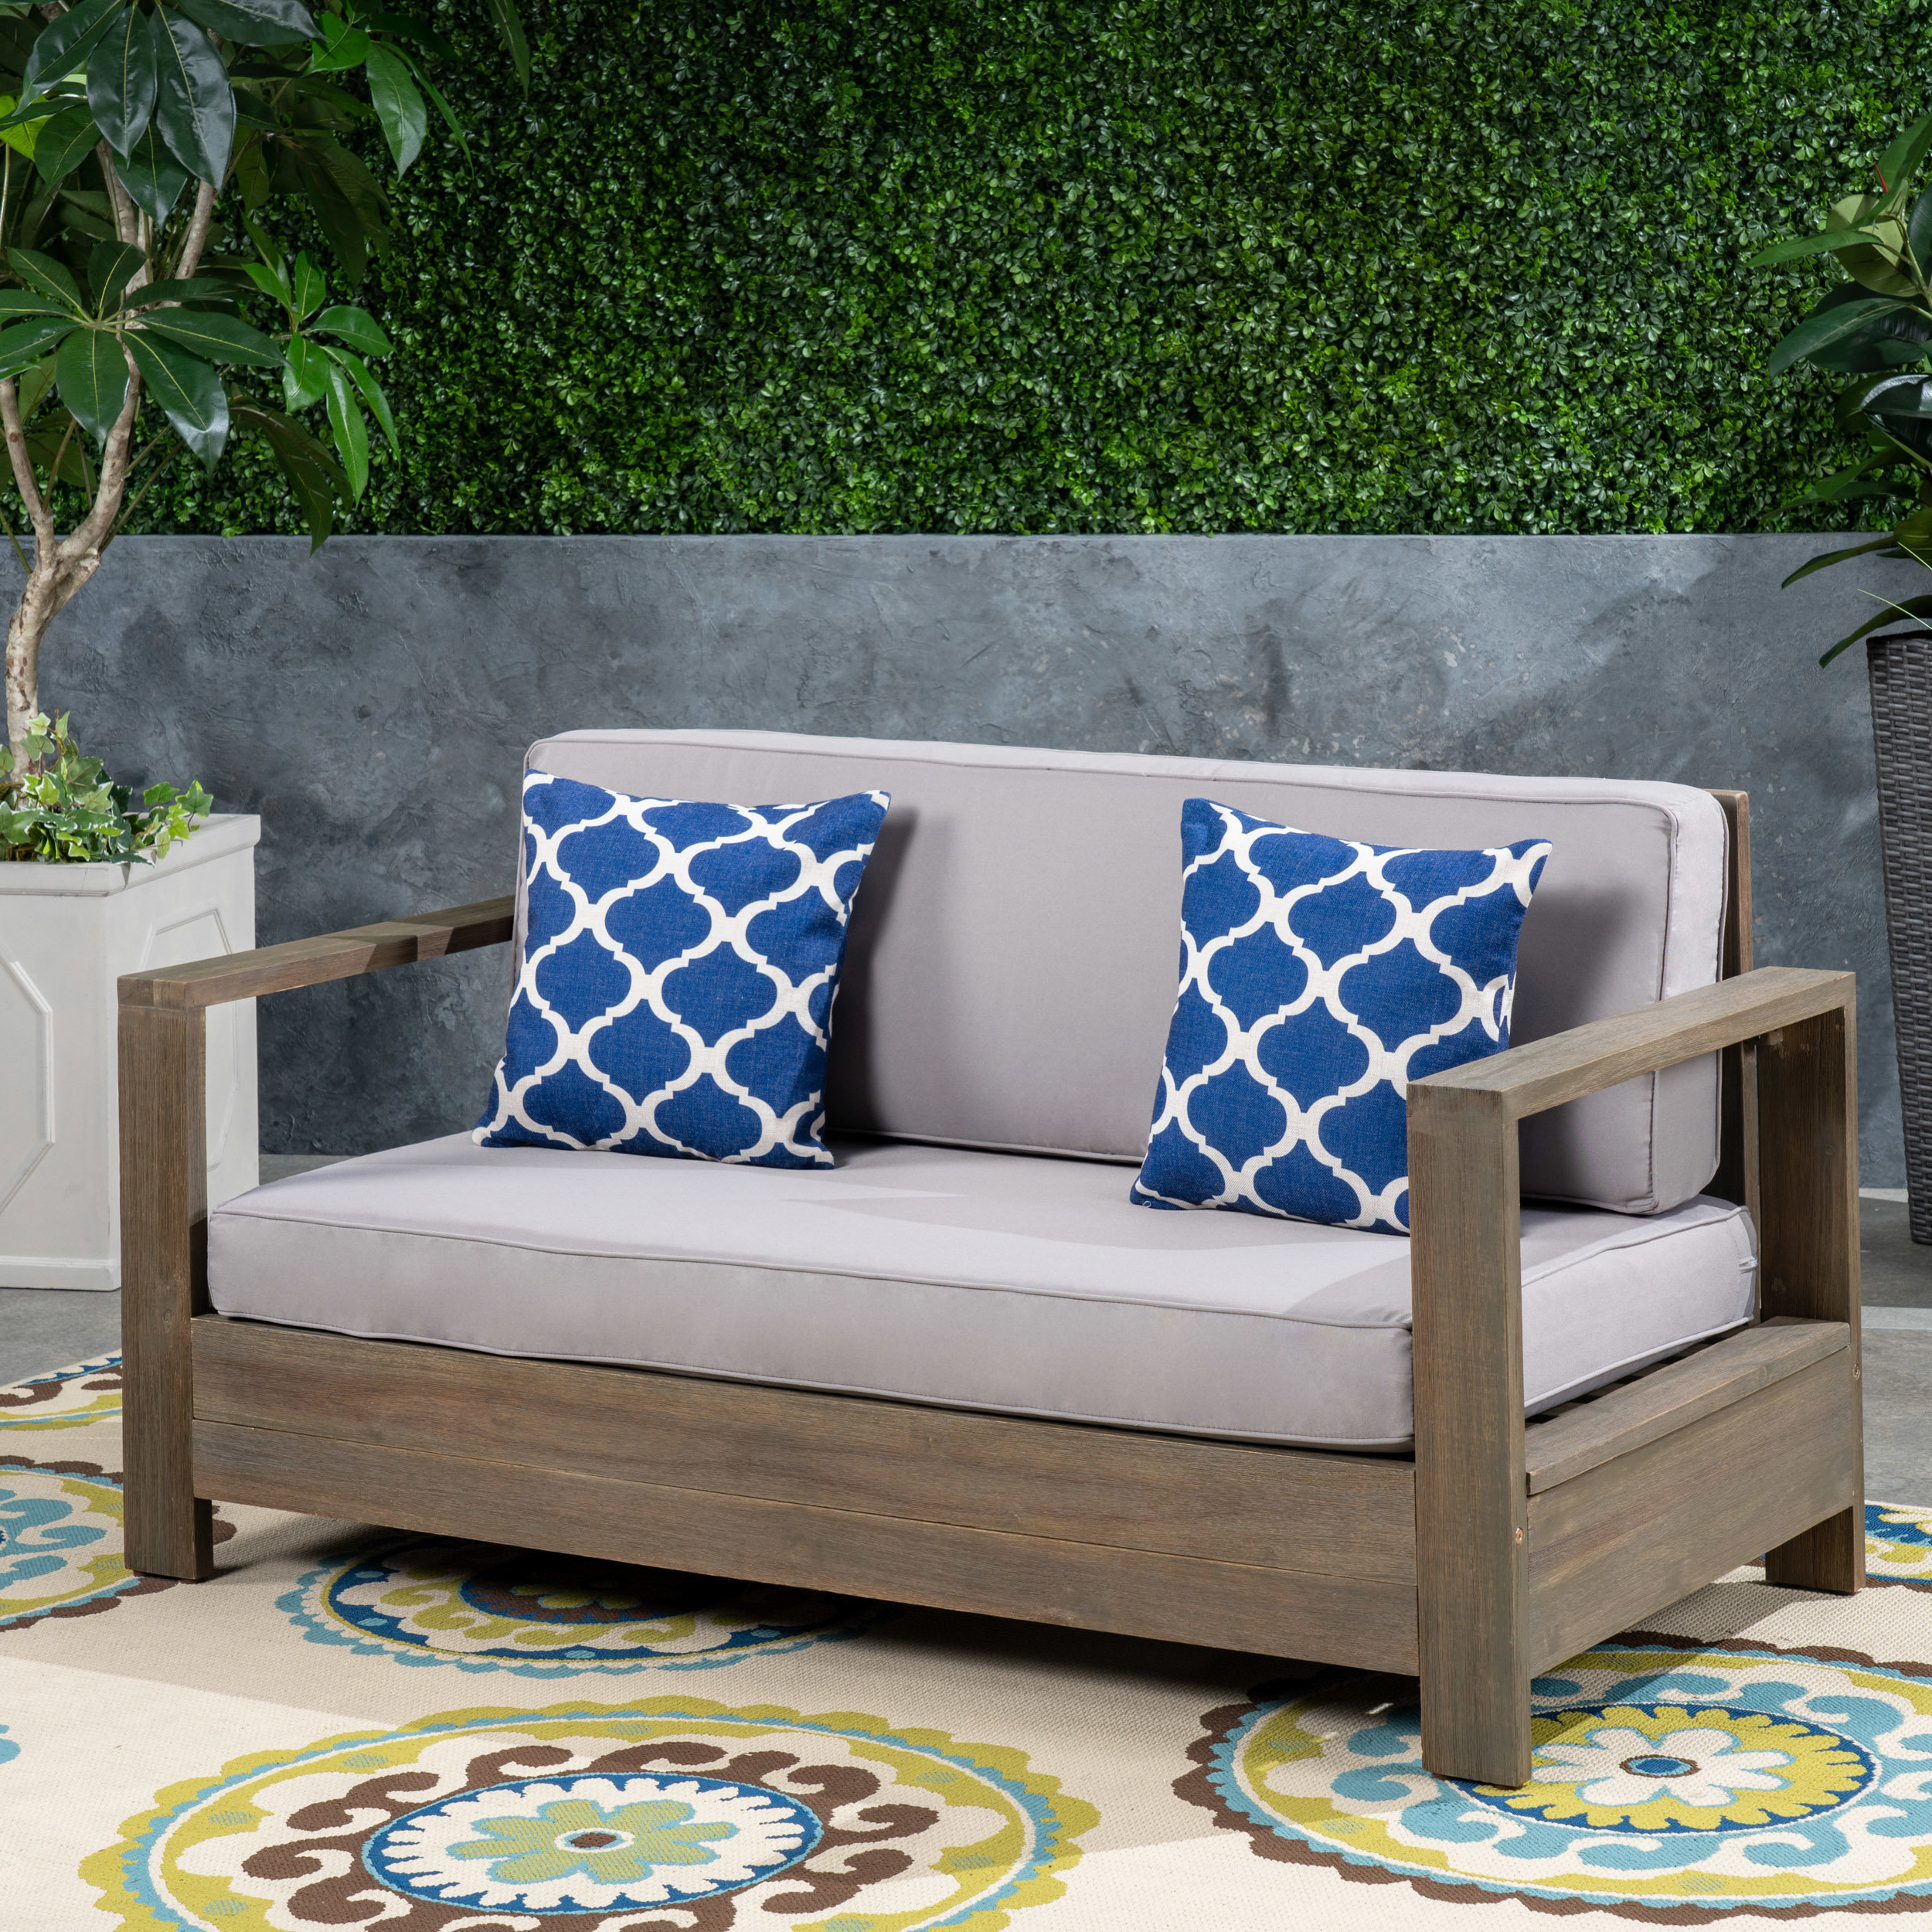 Popular Lyall Loveseats With Cushion With Regard To Landis Loveseat With Cushions (View 18 of 20)